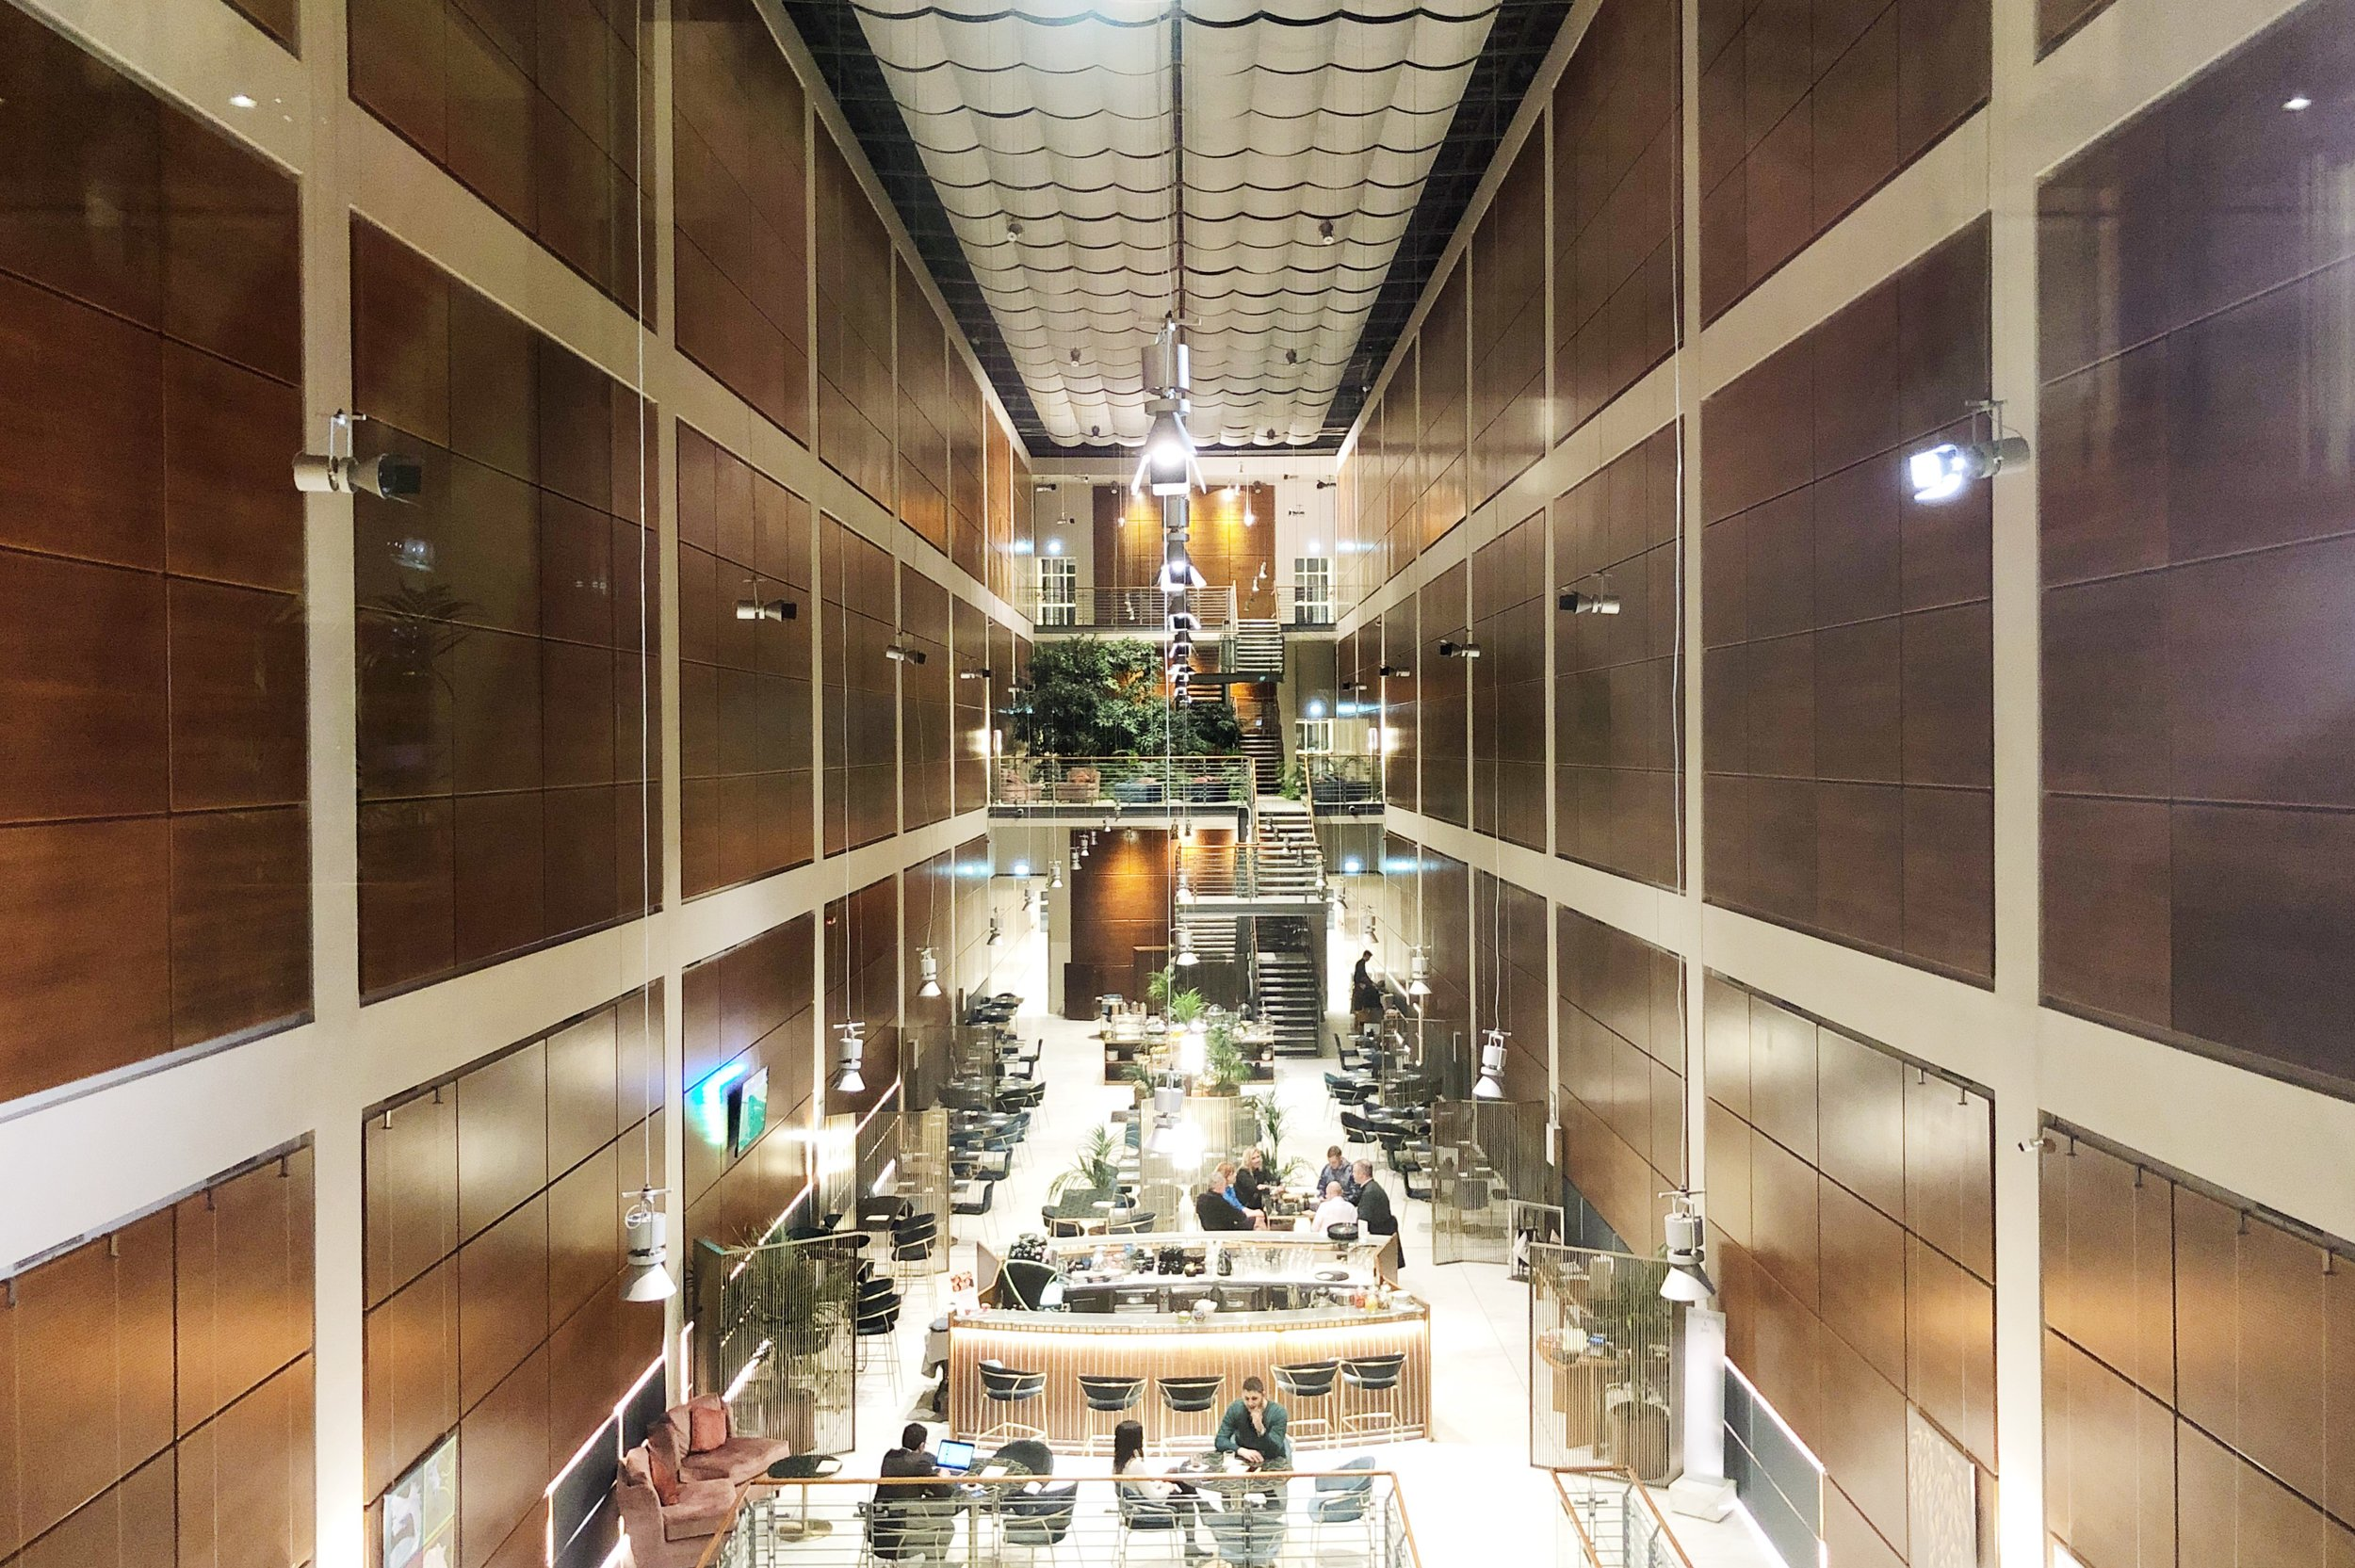 Renzo Piano recreates the lines of the former FIAT HQ in the Doubletree's lounge. Photo: Erica Firpo